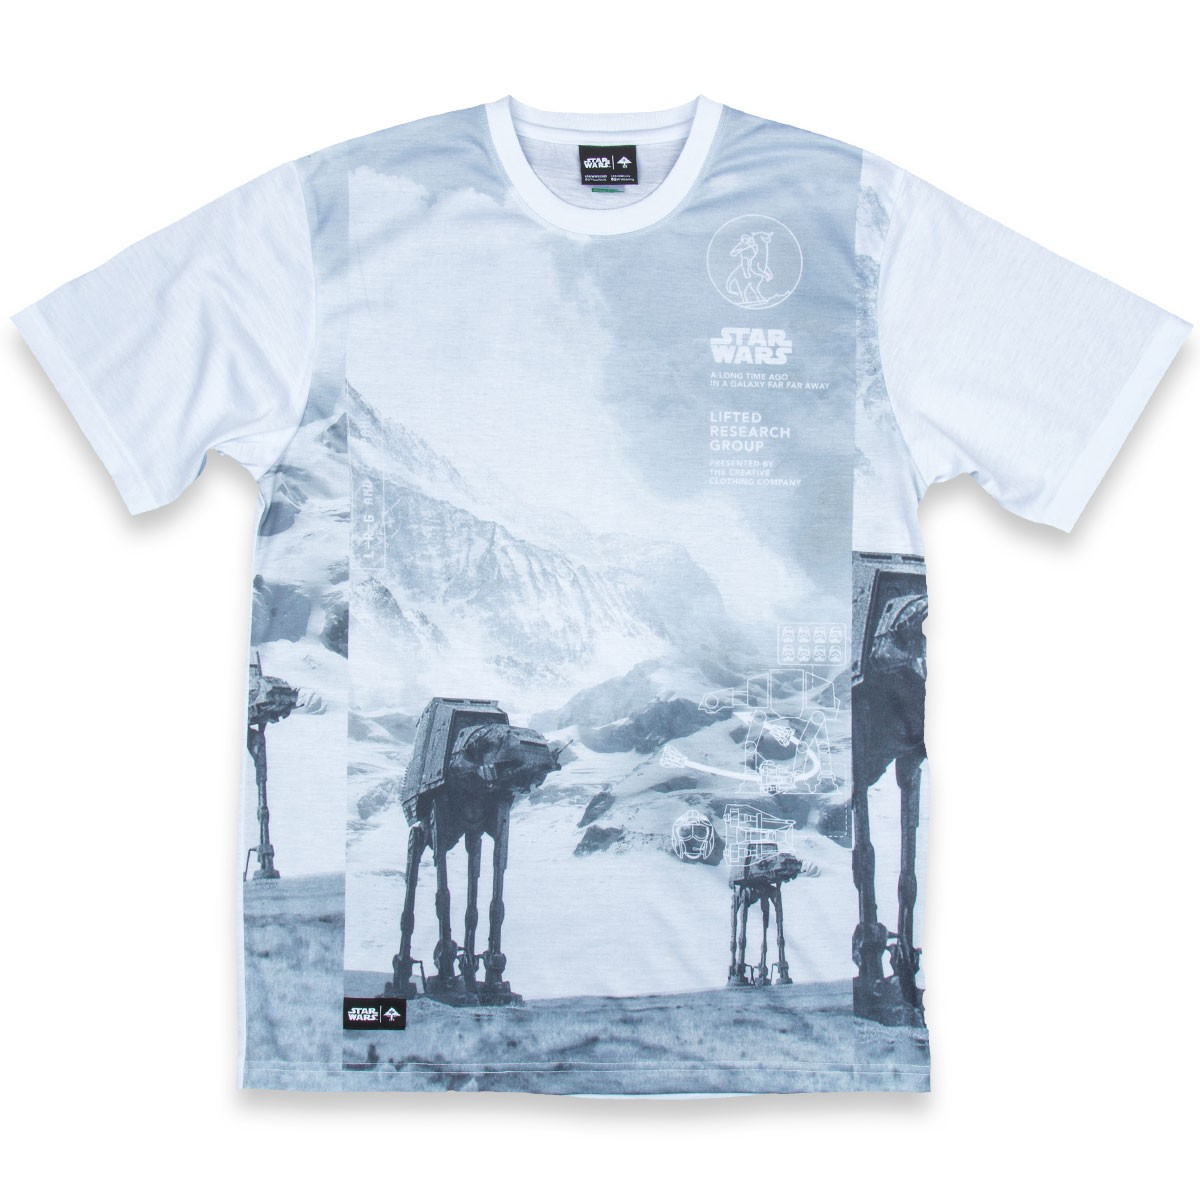 LRG Episode 4 and 5 T-Shirt - Snow